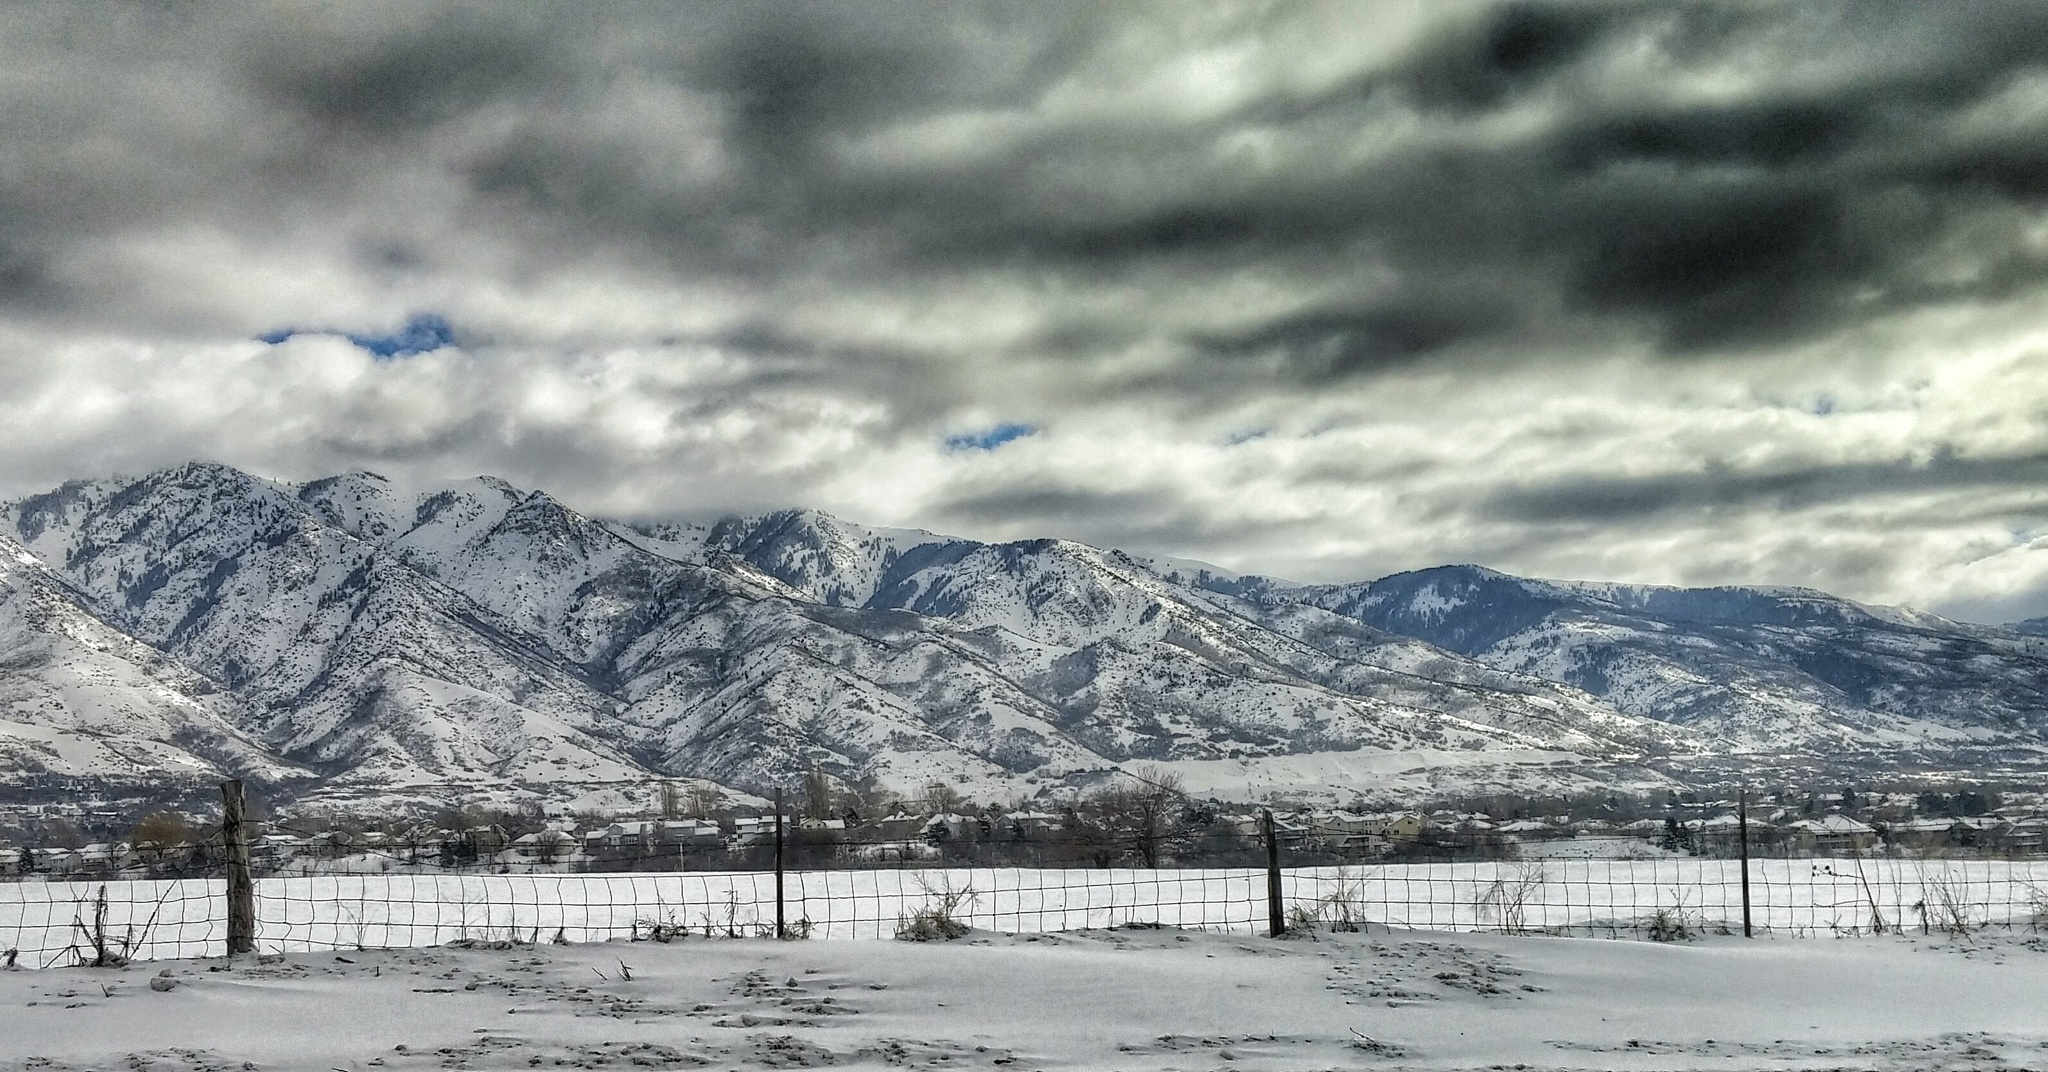 More if the Wasatch Range by Jim Beitz